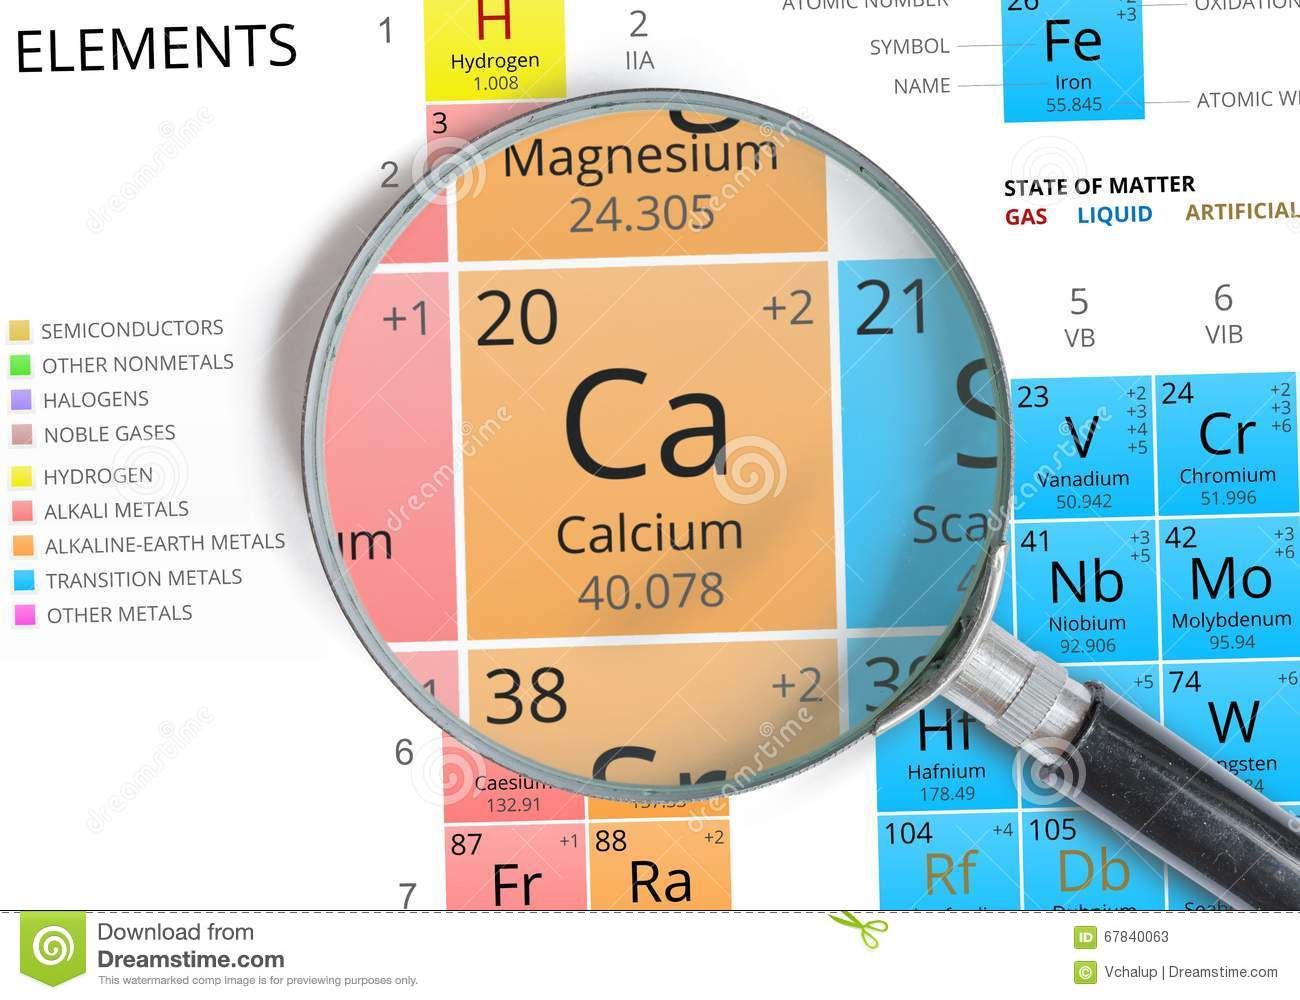 Calcium symbol ca element of the periodic table zoomed stock element of the periodic table zoomed stock illustration illustration urtaz Gallery